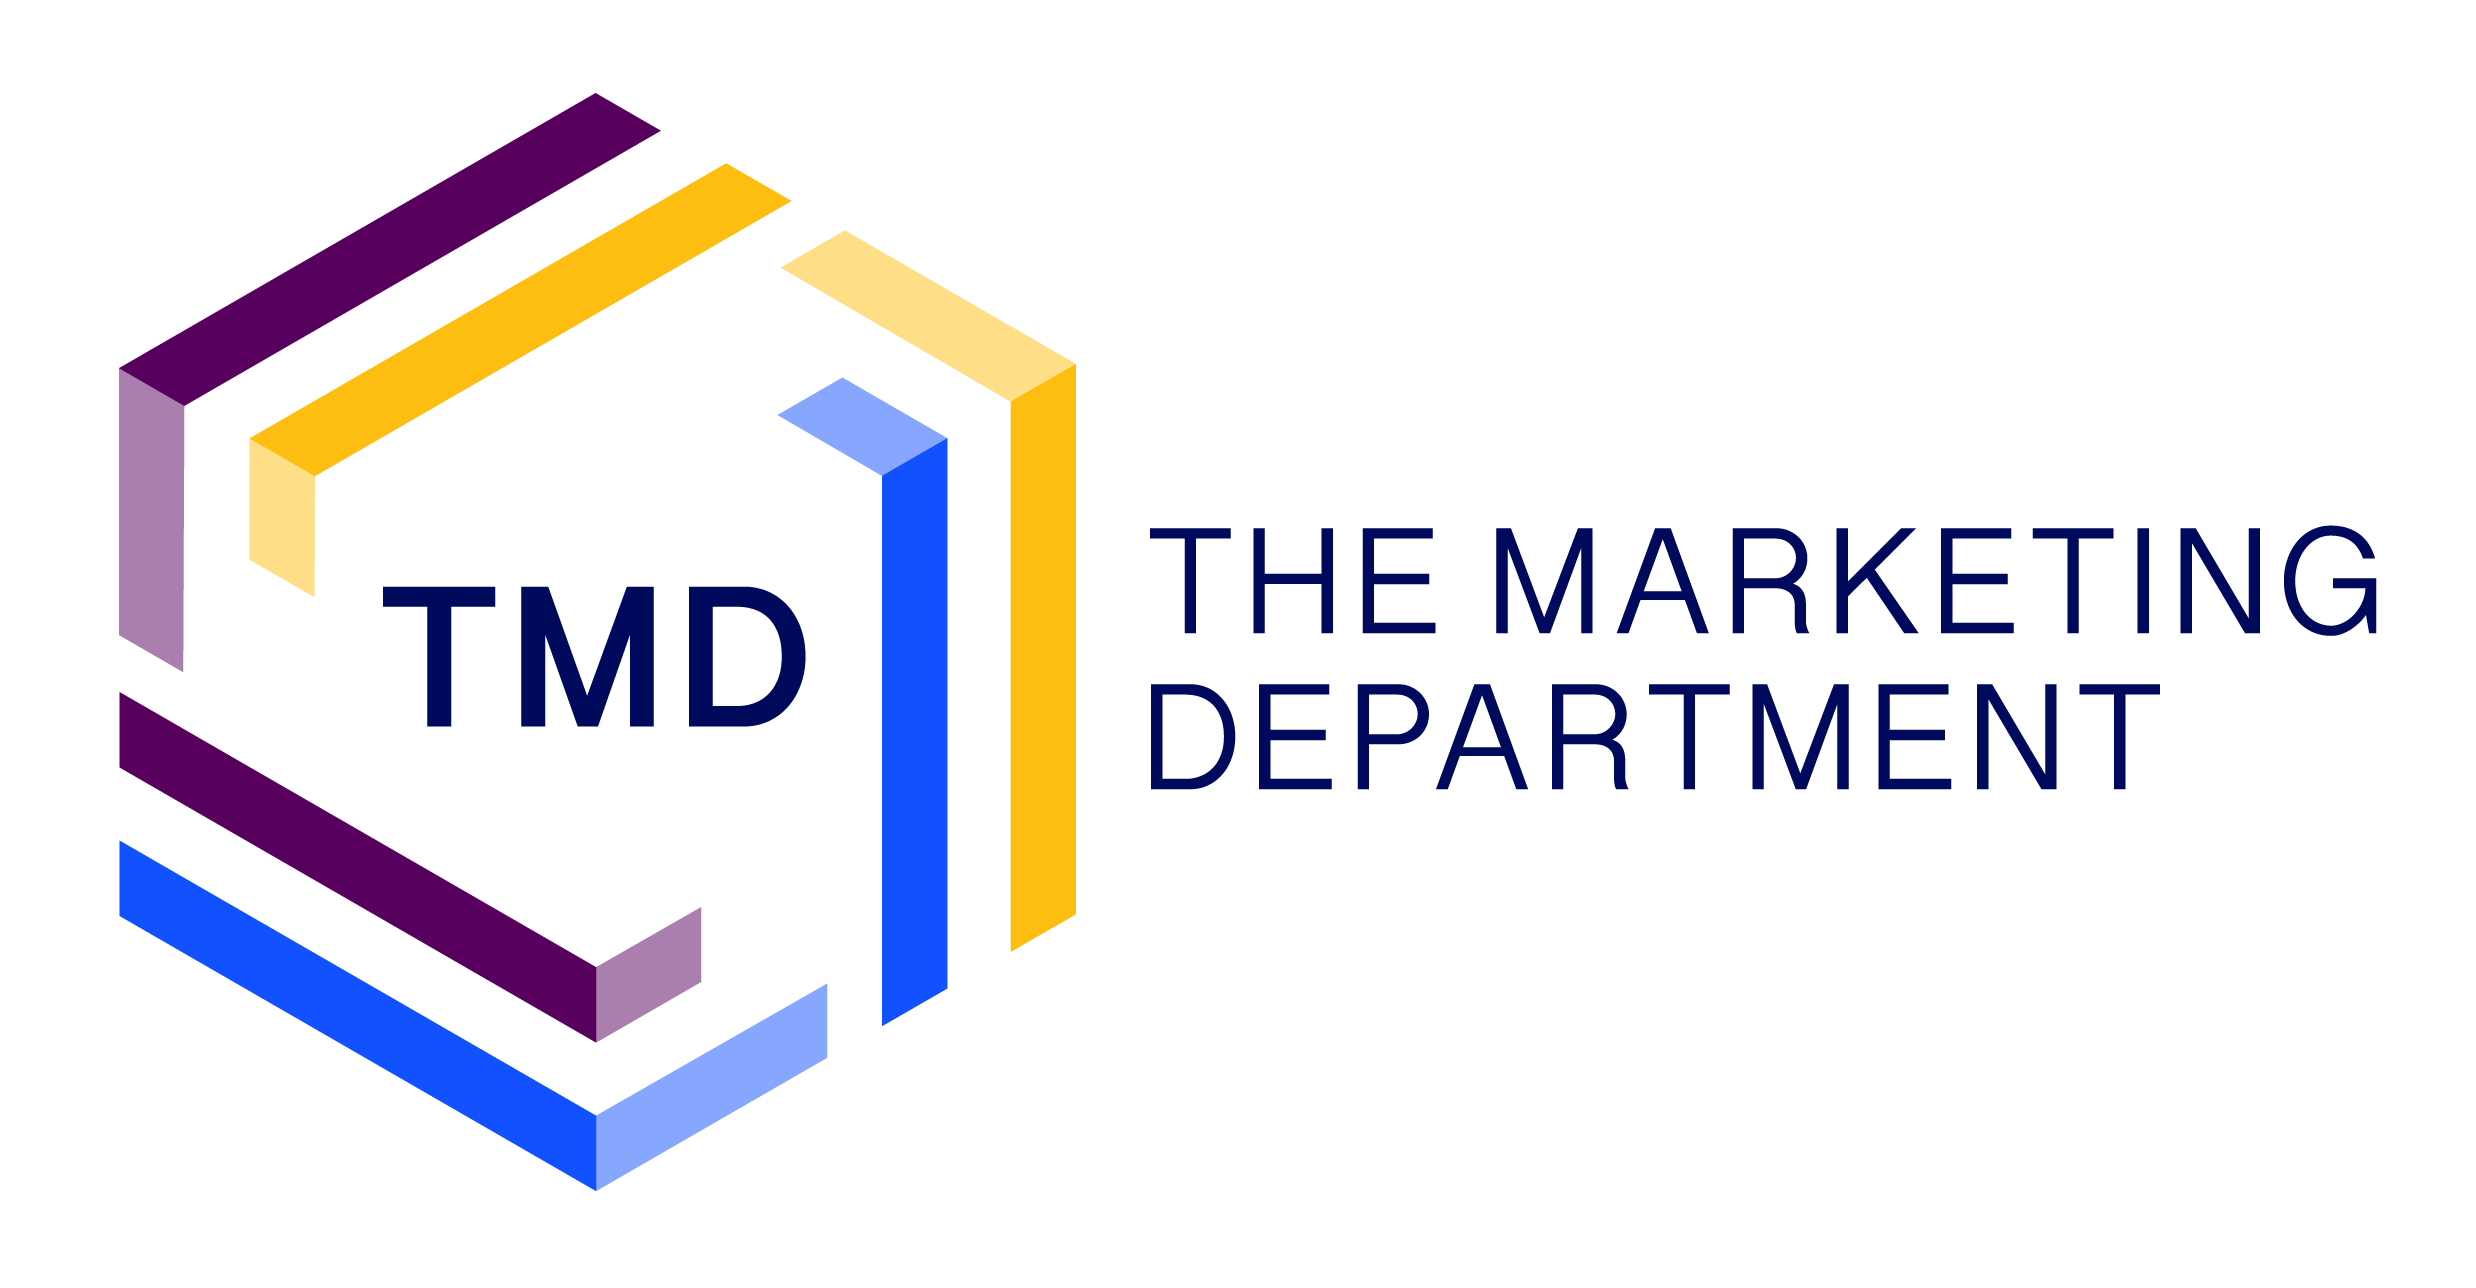 The Marketing Department - www.tmd.scot